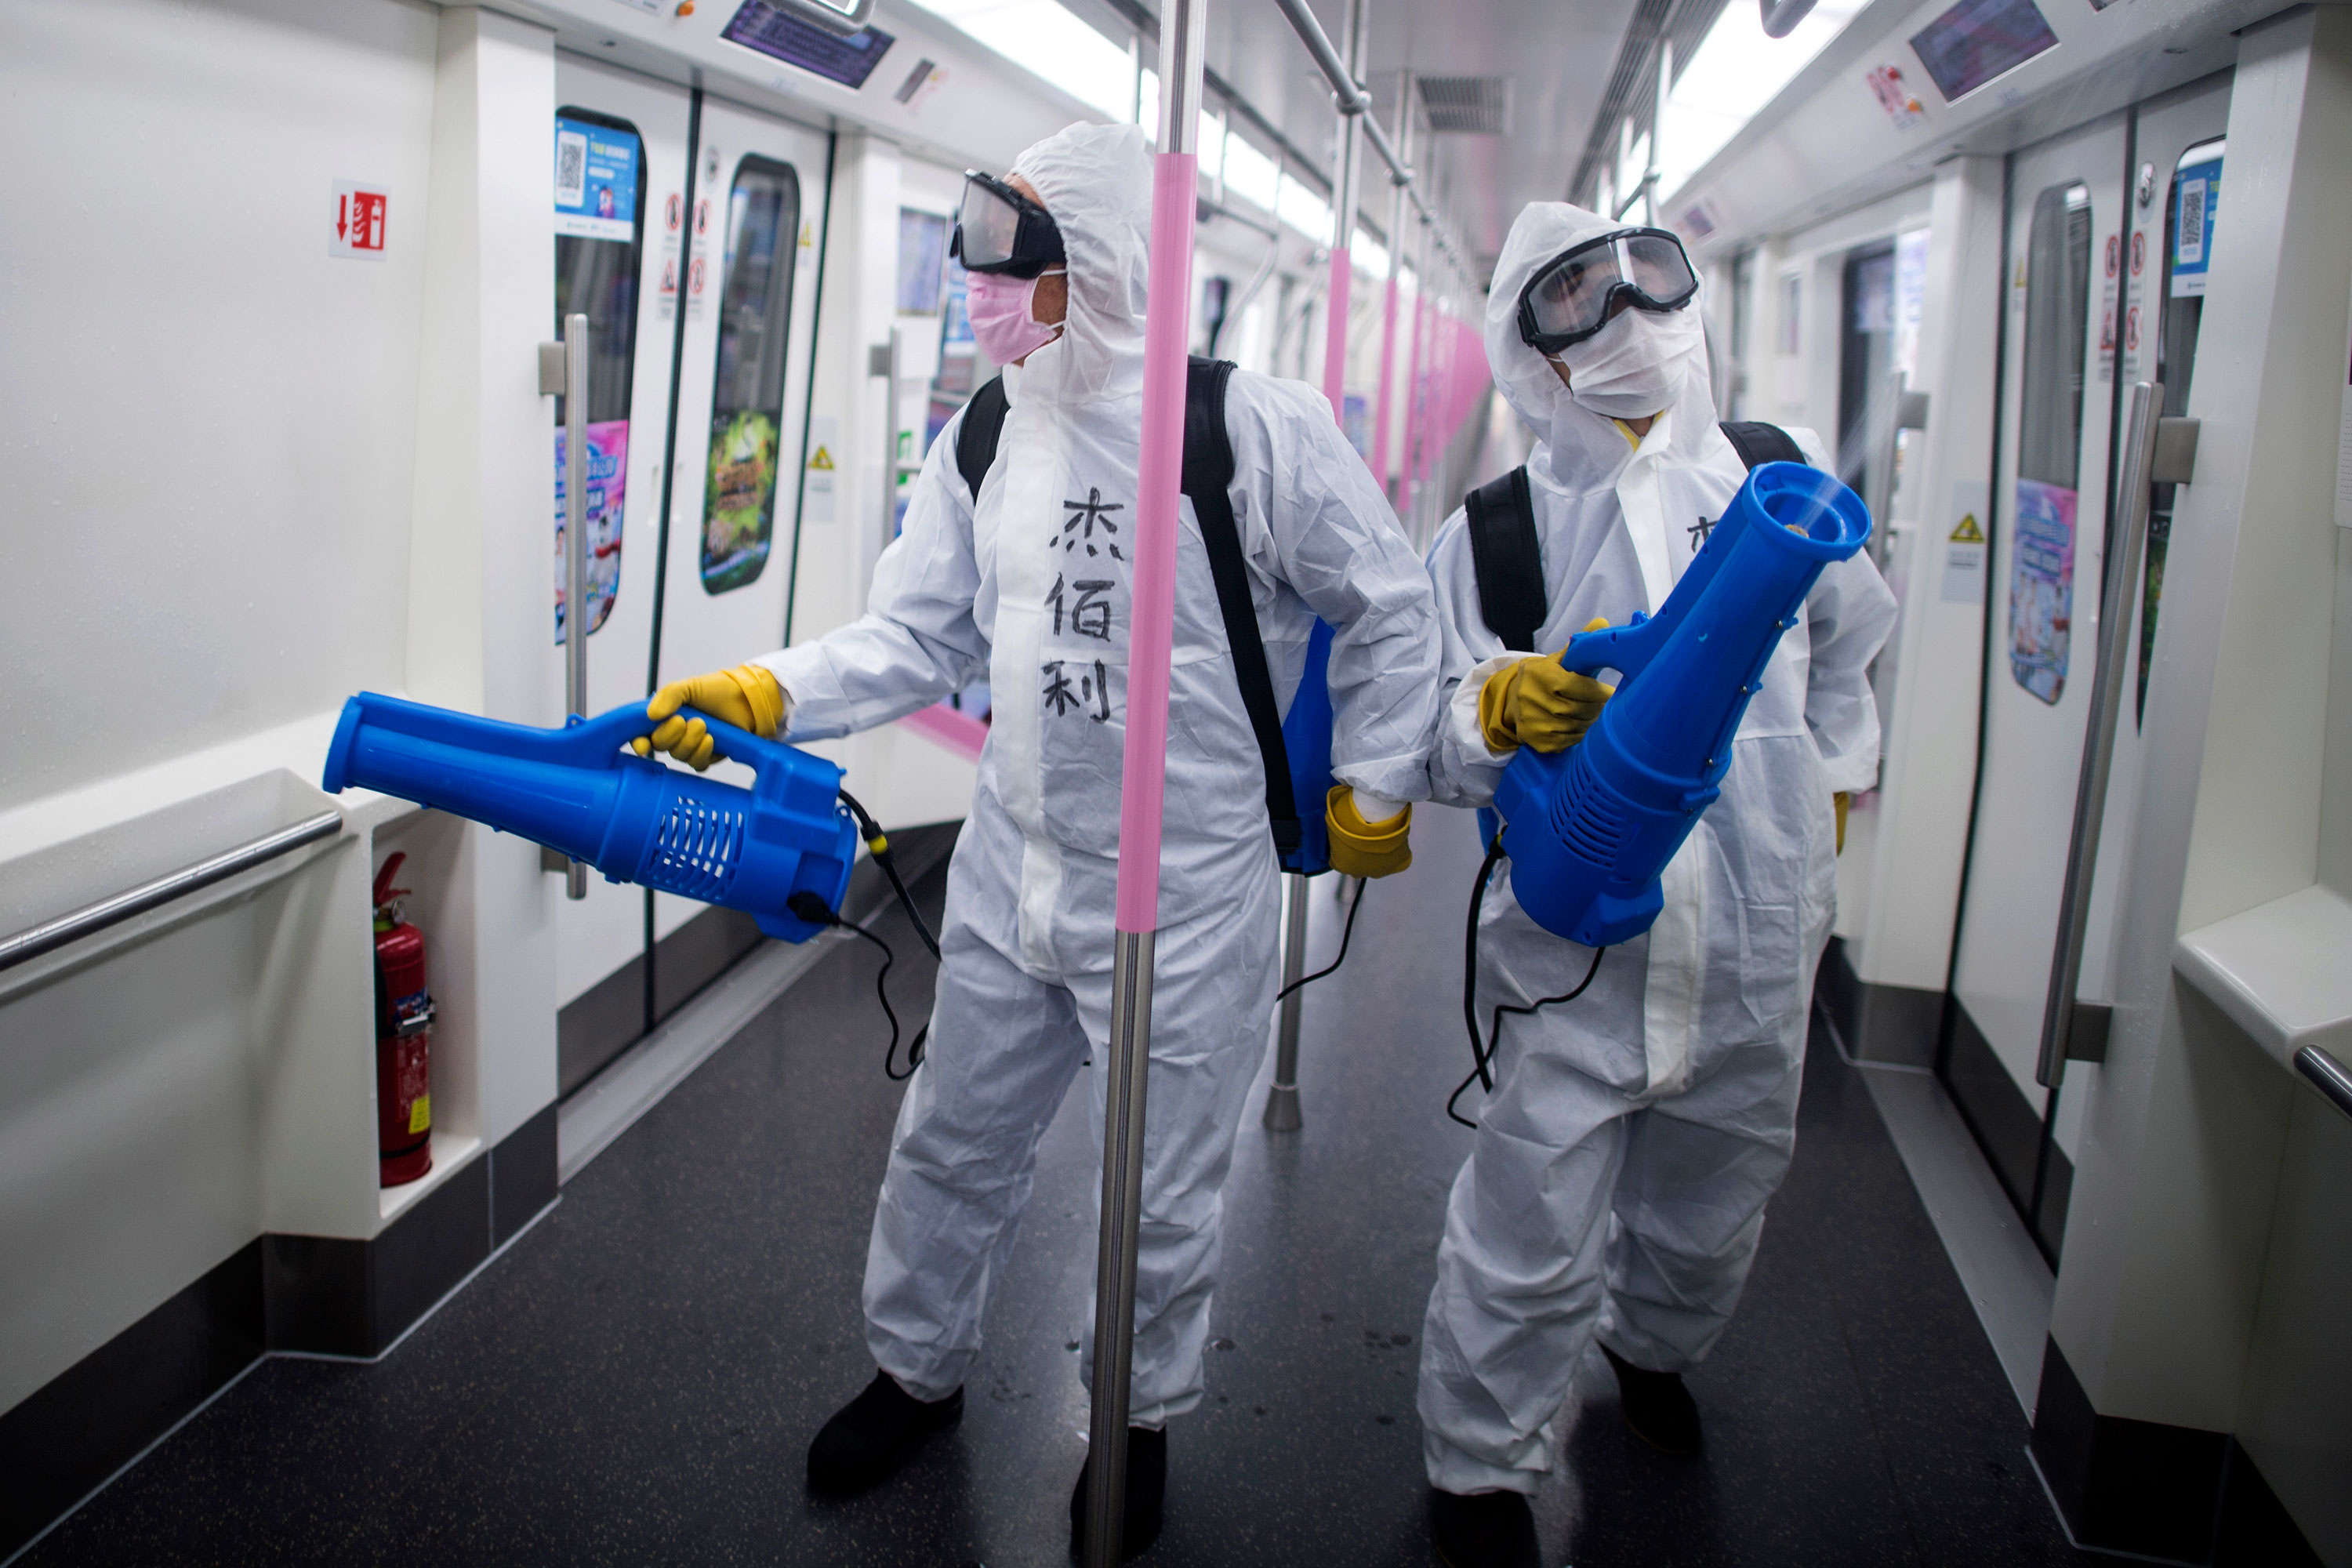 Workers disinfect a subway train on March 23 in preparation for the restoration of public transport in Wuhan, China.